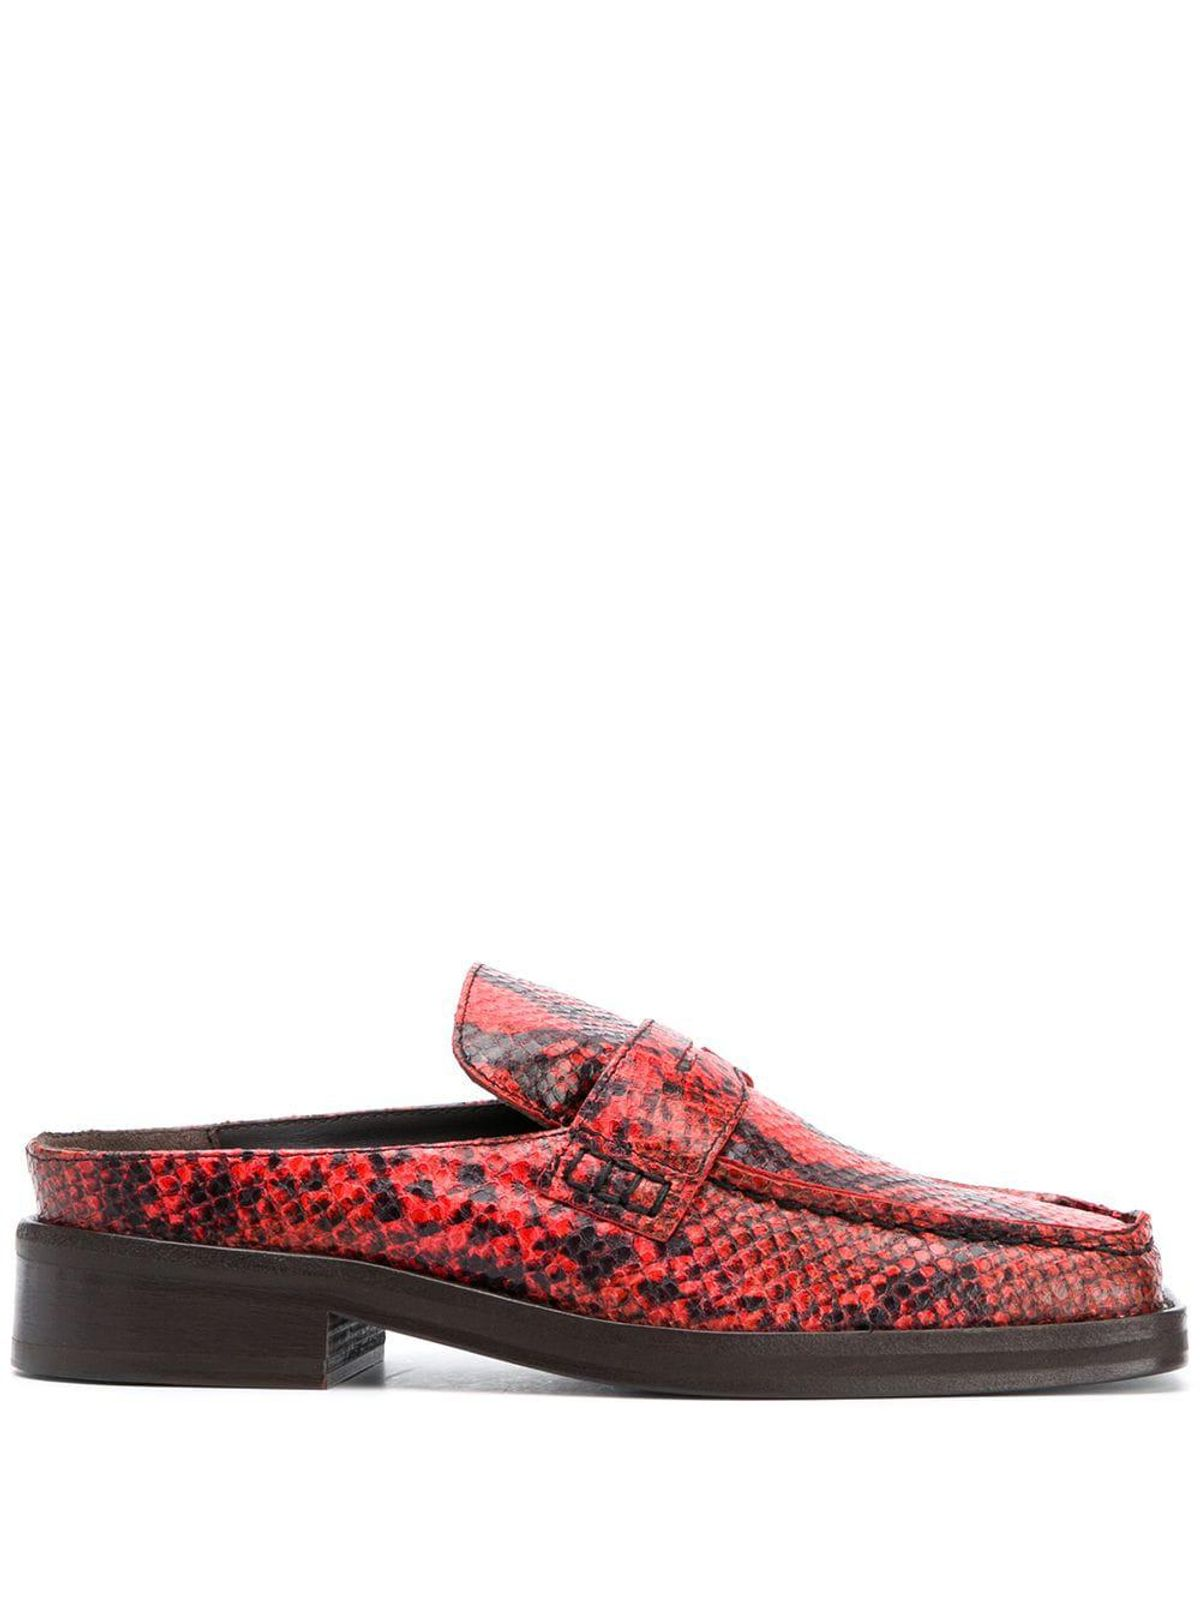 martine rose arches snakeskin print mules